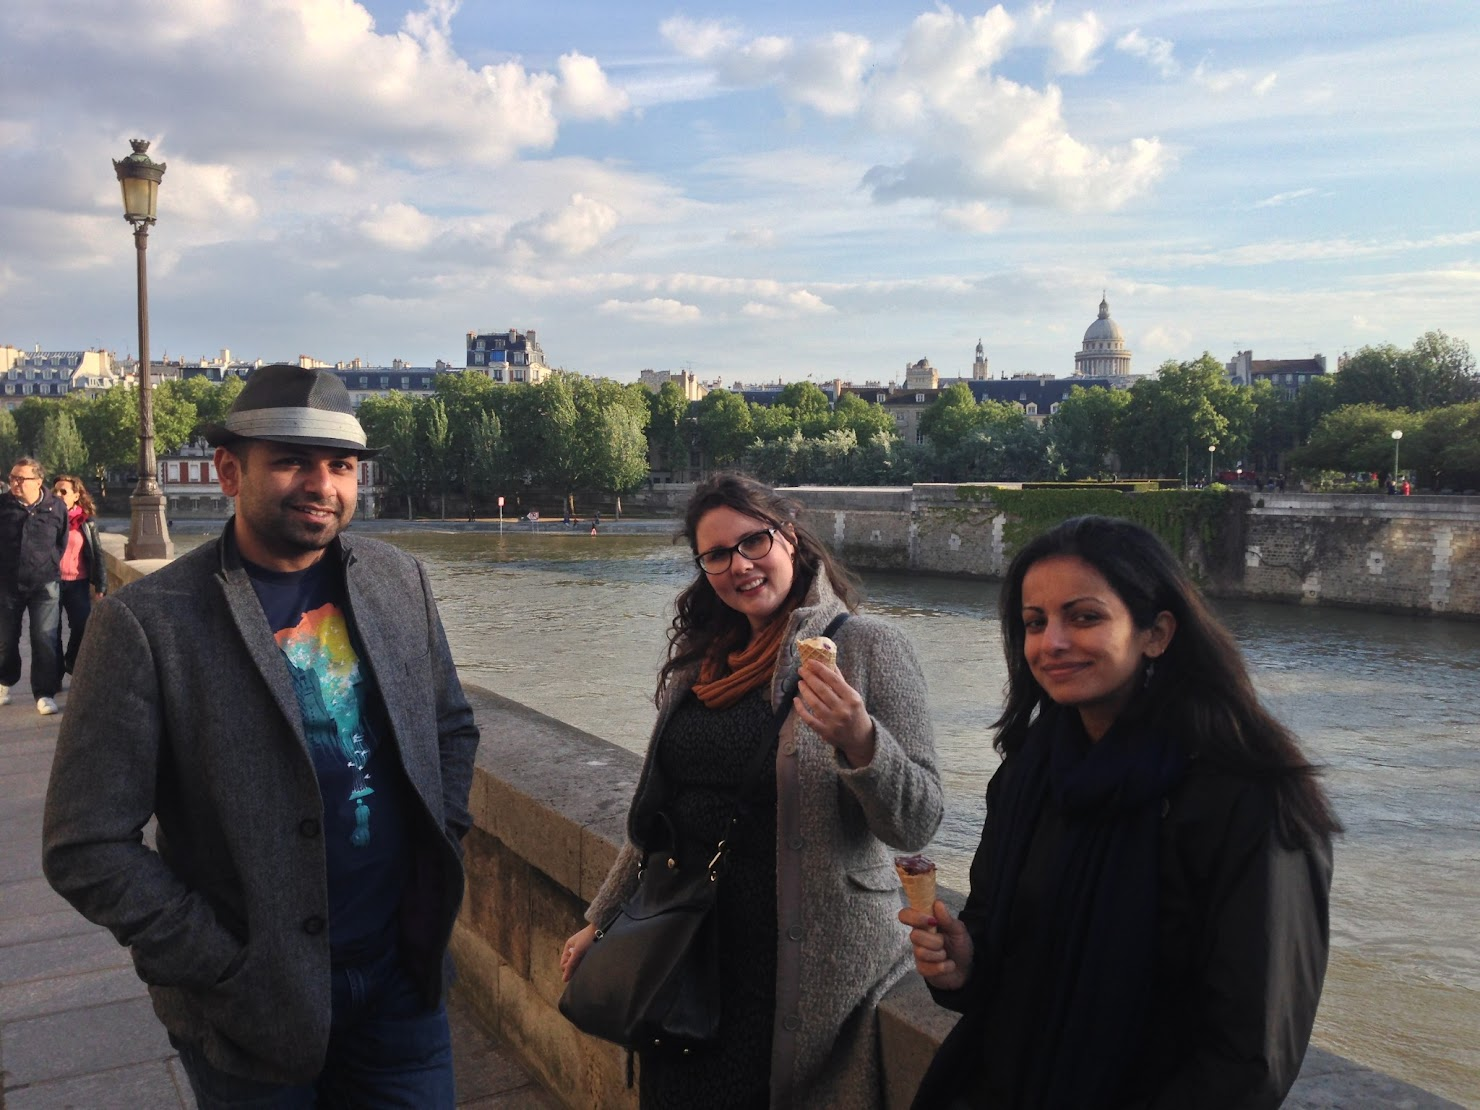 Walk along the Seine